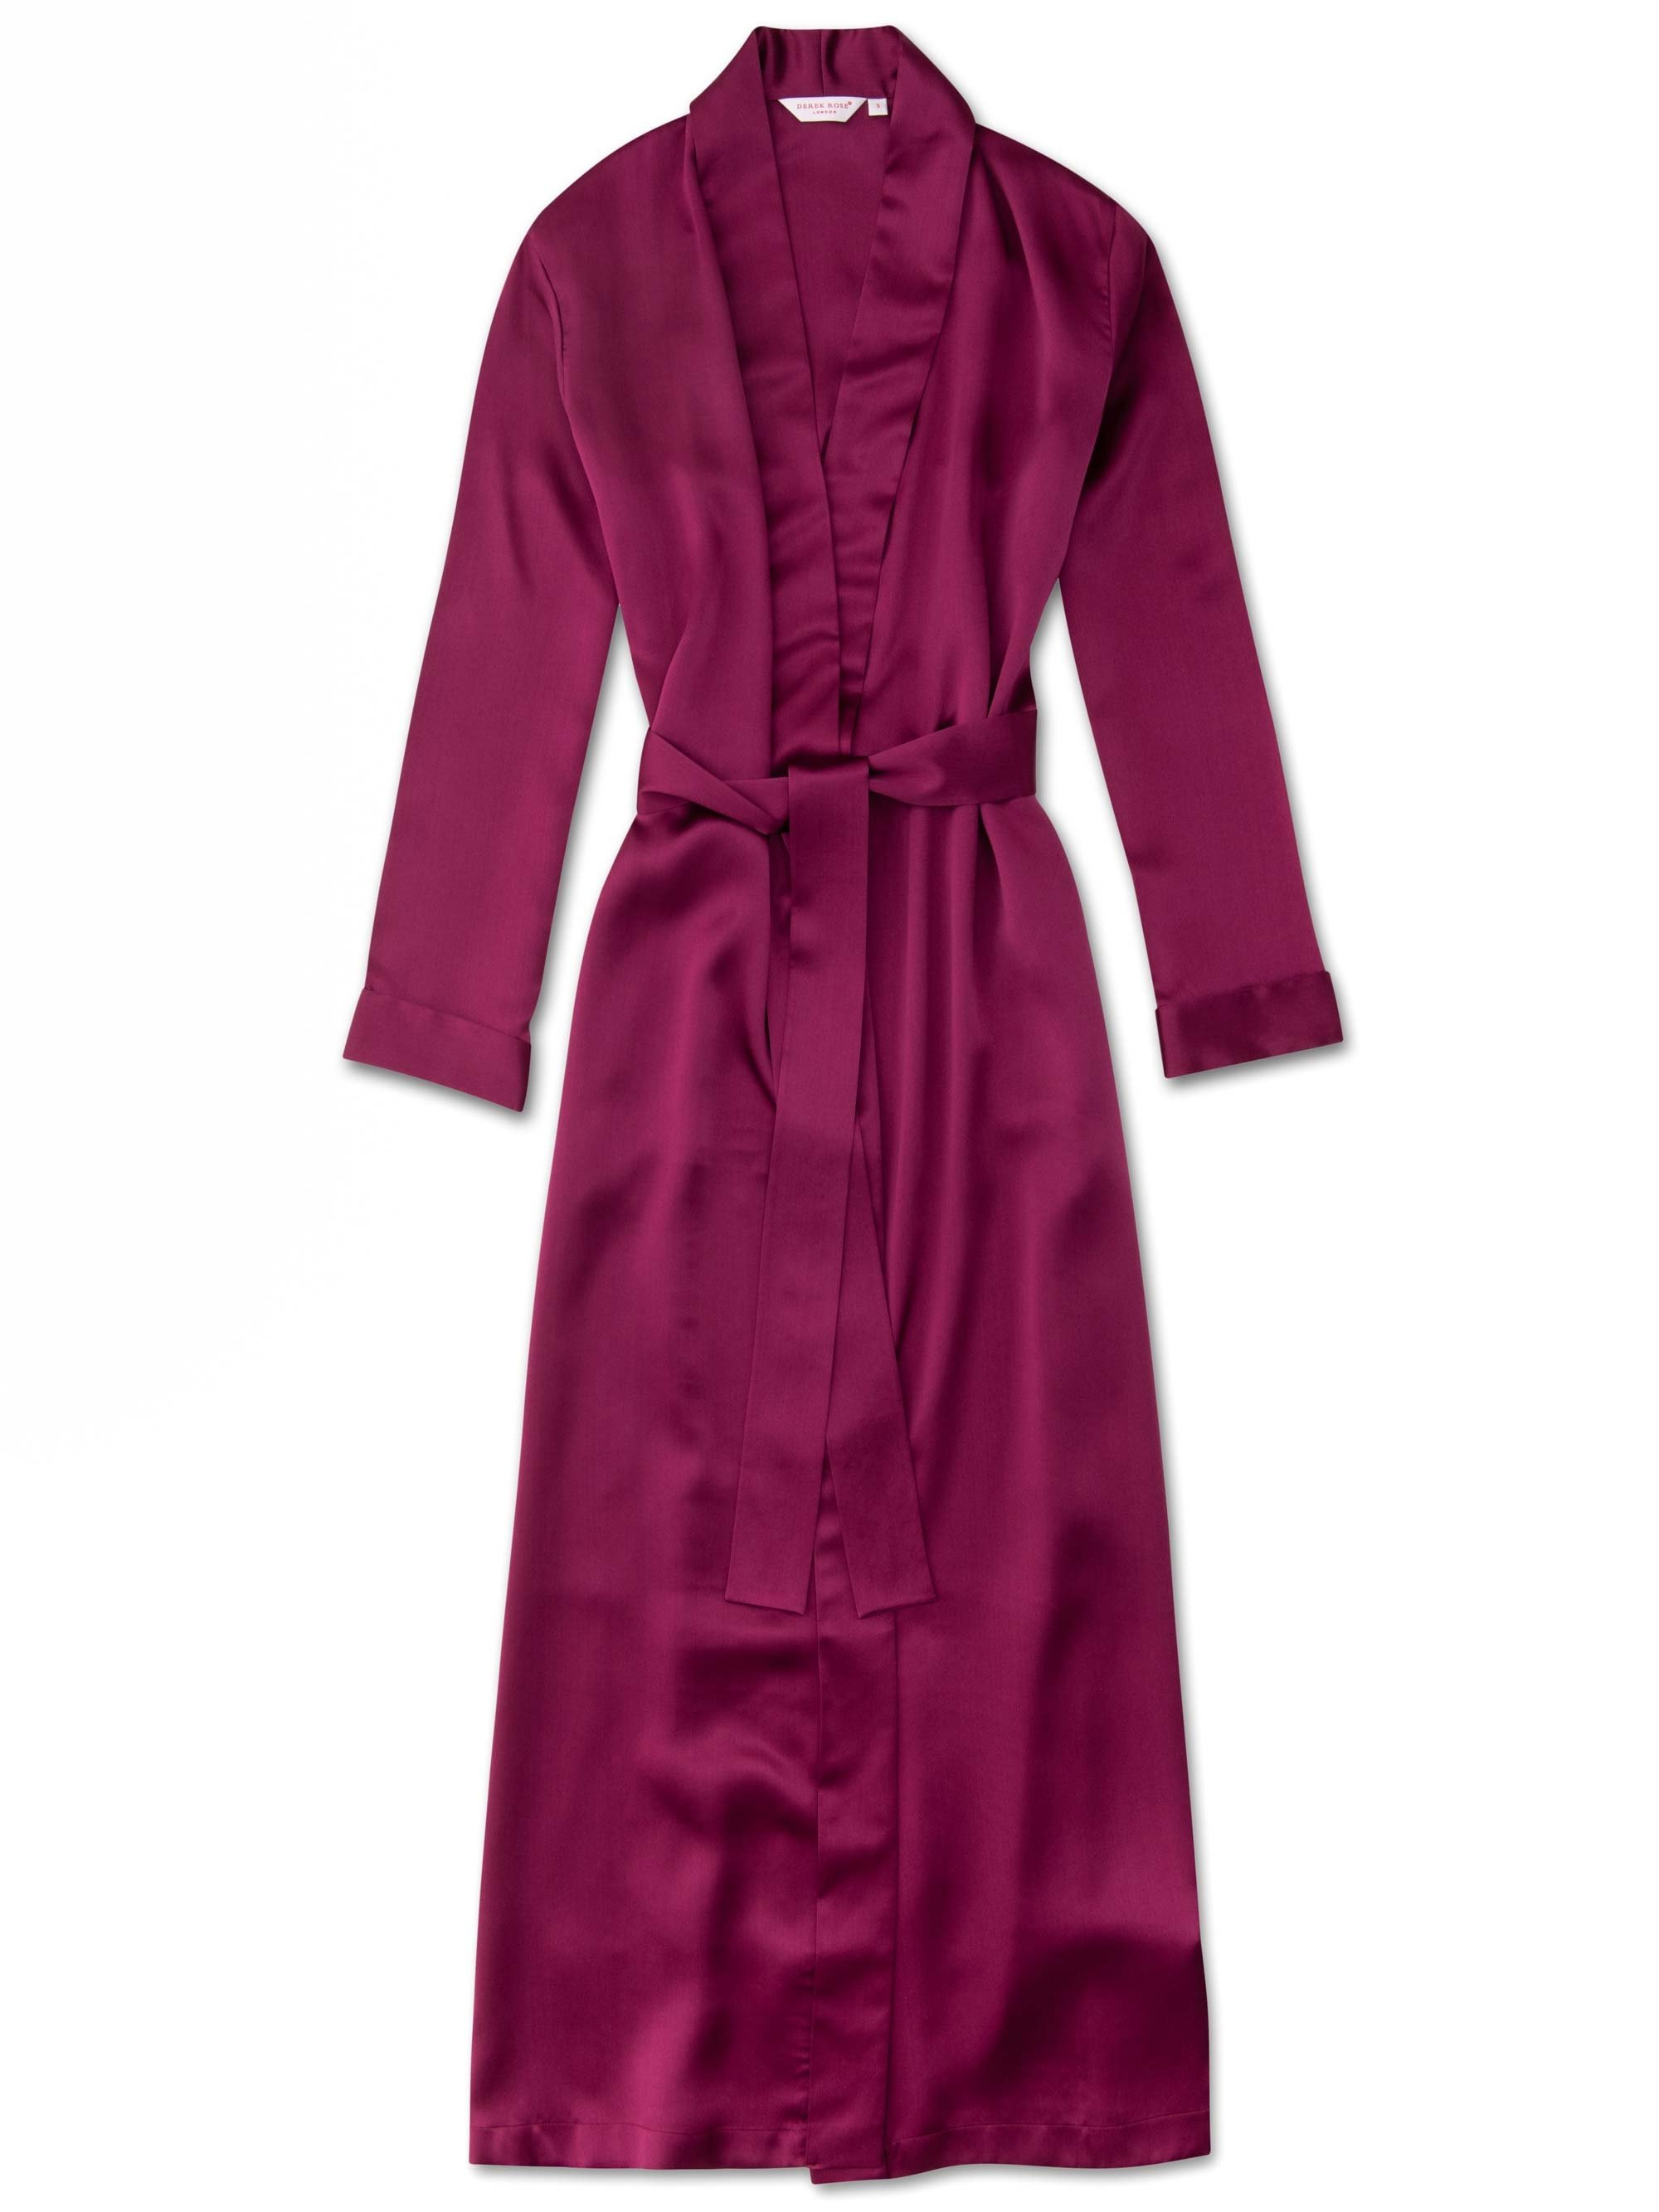 Women's Full Length Dressing Gown Bailey Pure Silk Satin Berry